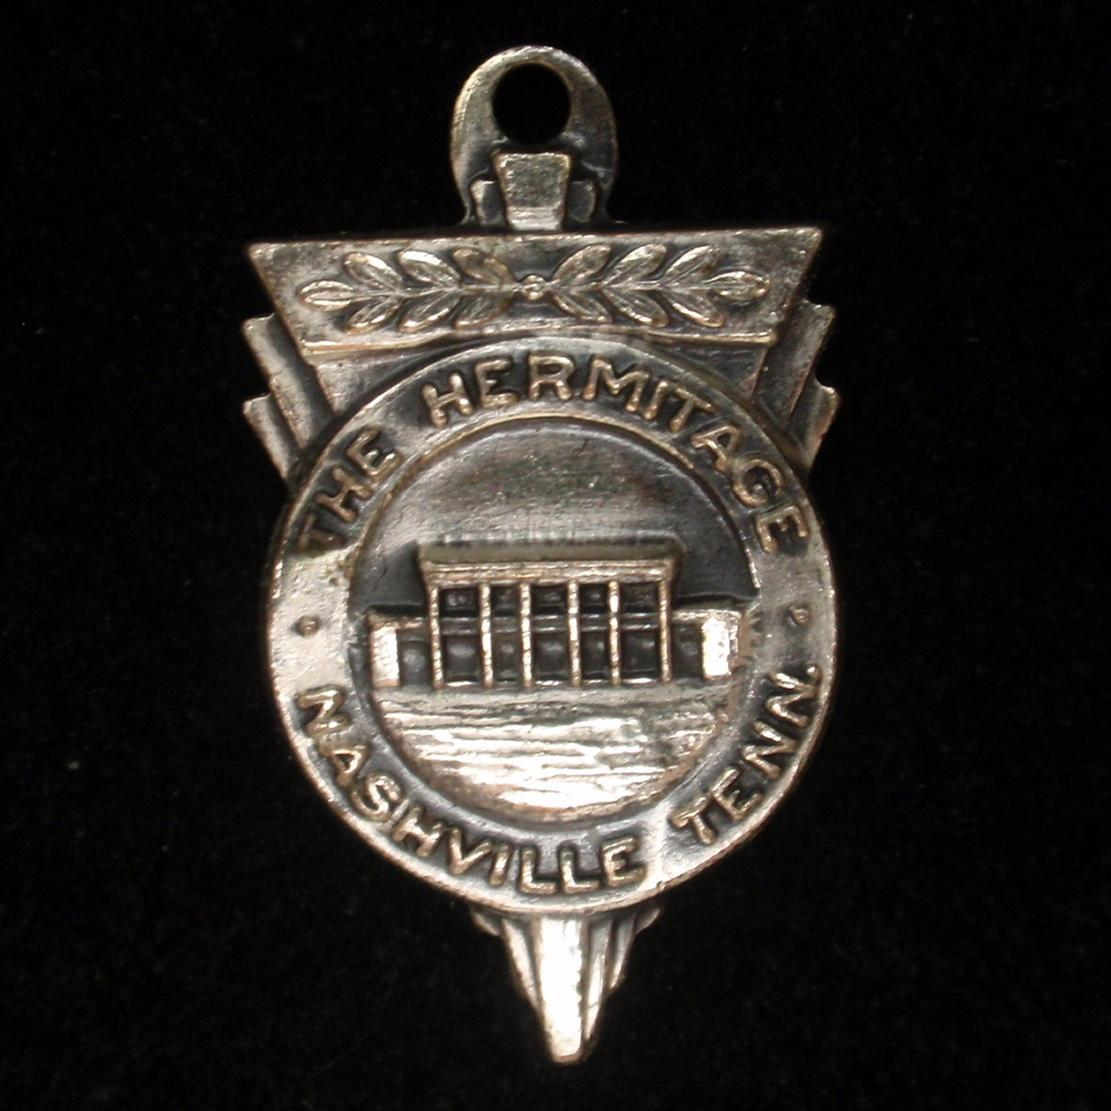 The Hermitage Nashville Tennessee Charm Vintage Sterling Silver B&K Travel Souvenir